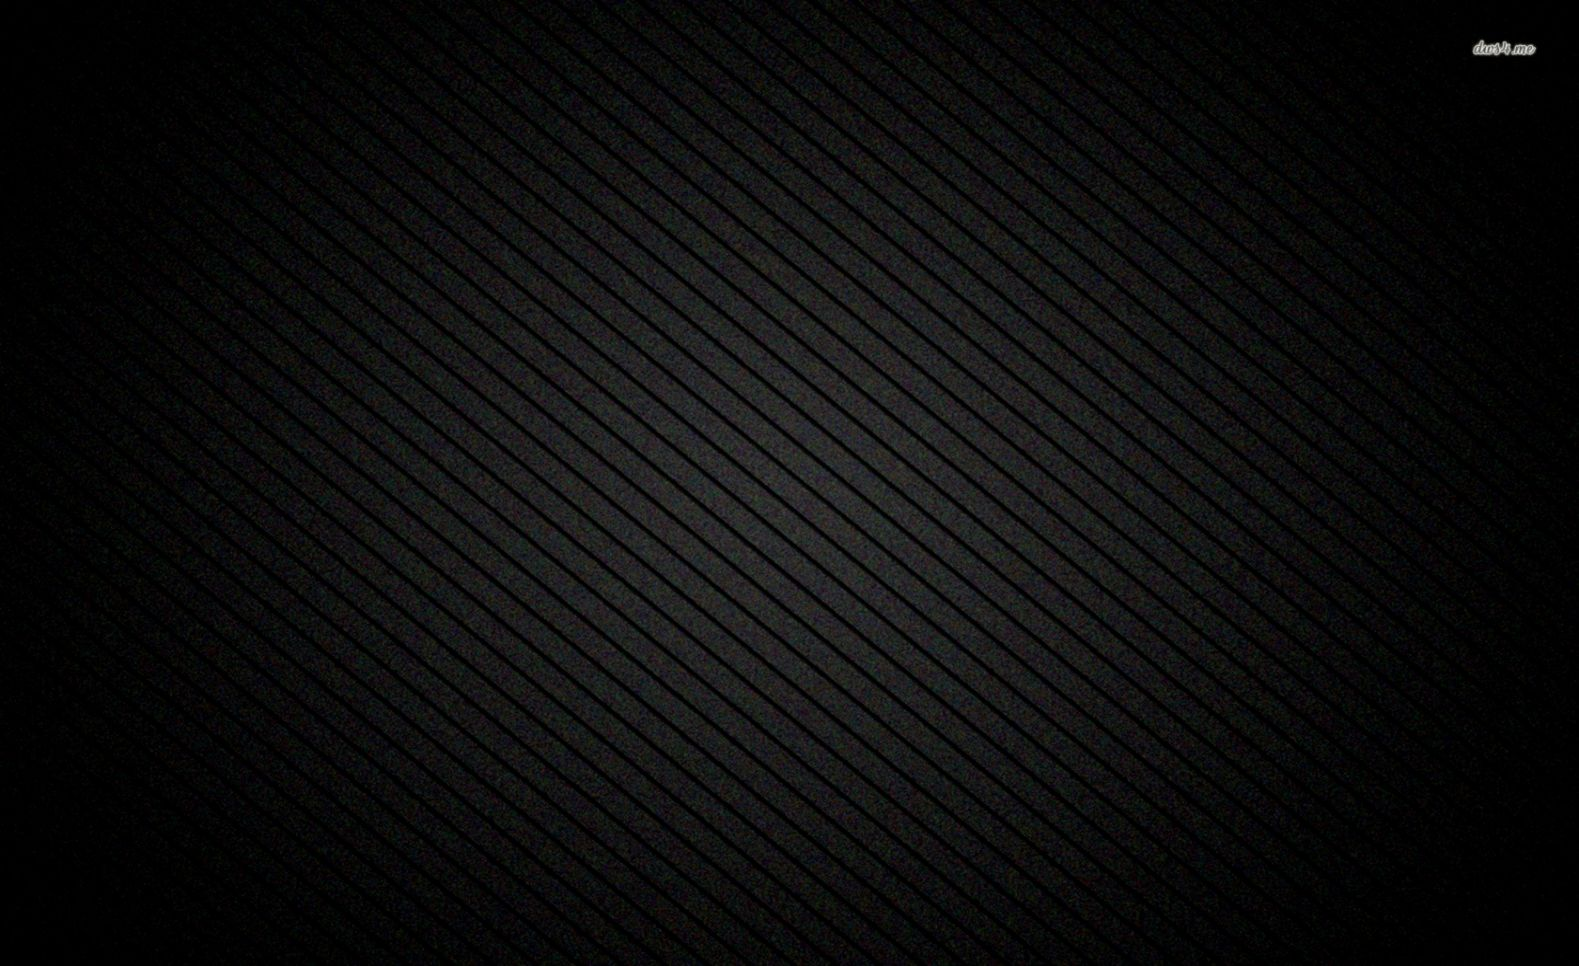 pin grey lines wallpaper - photo #7